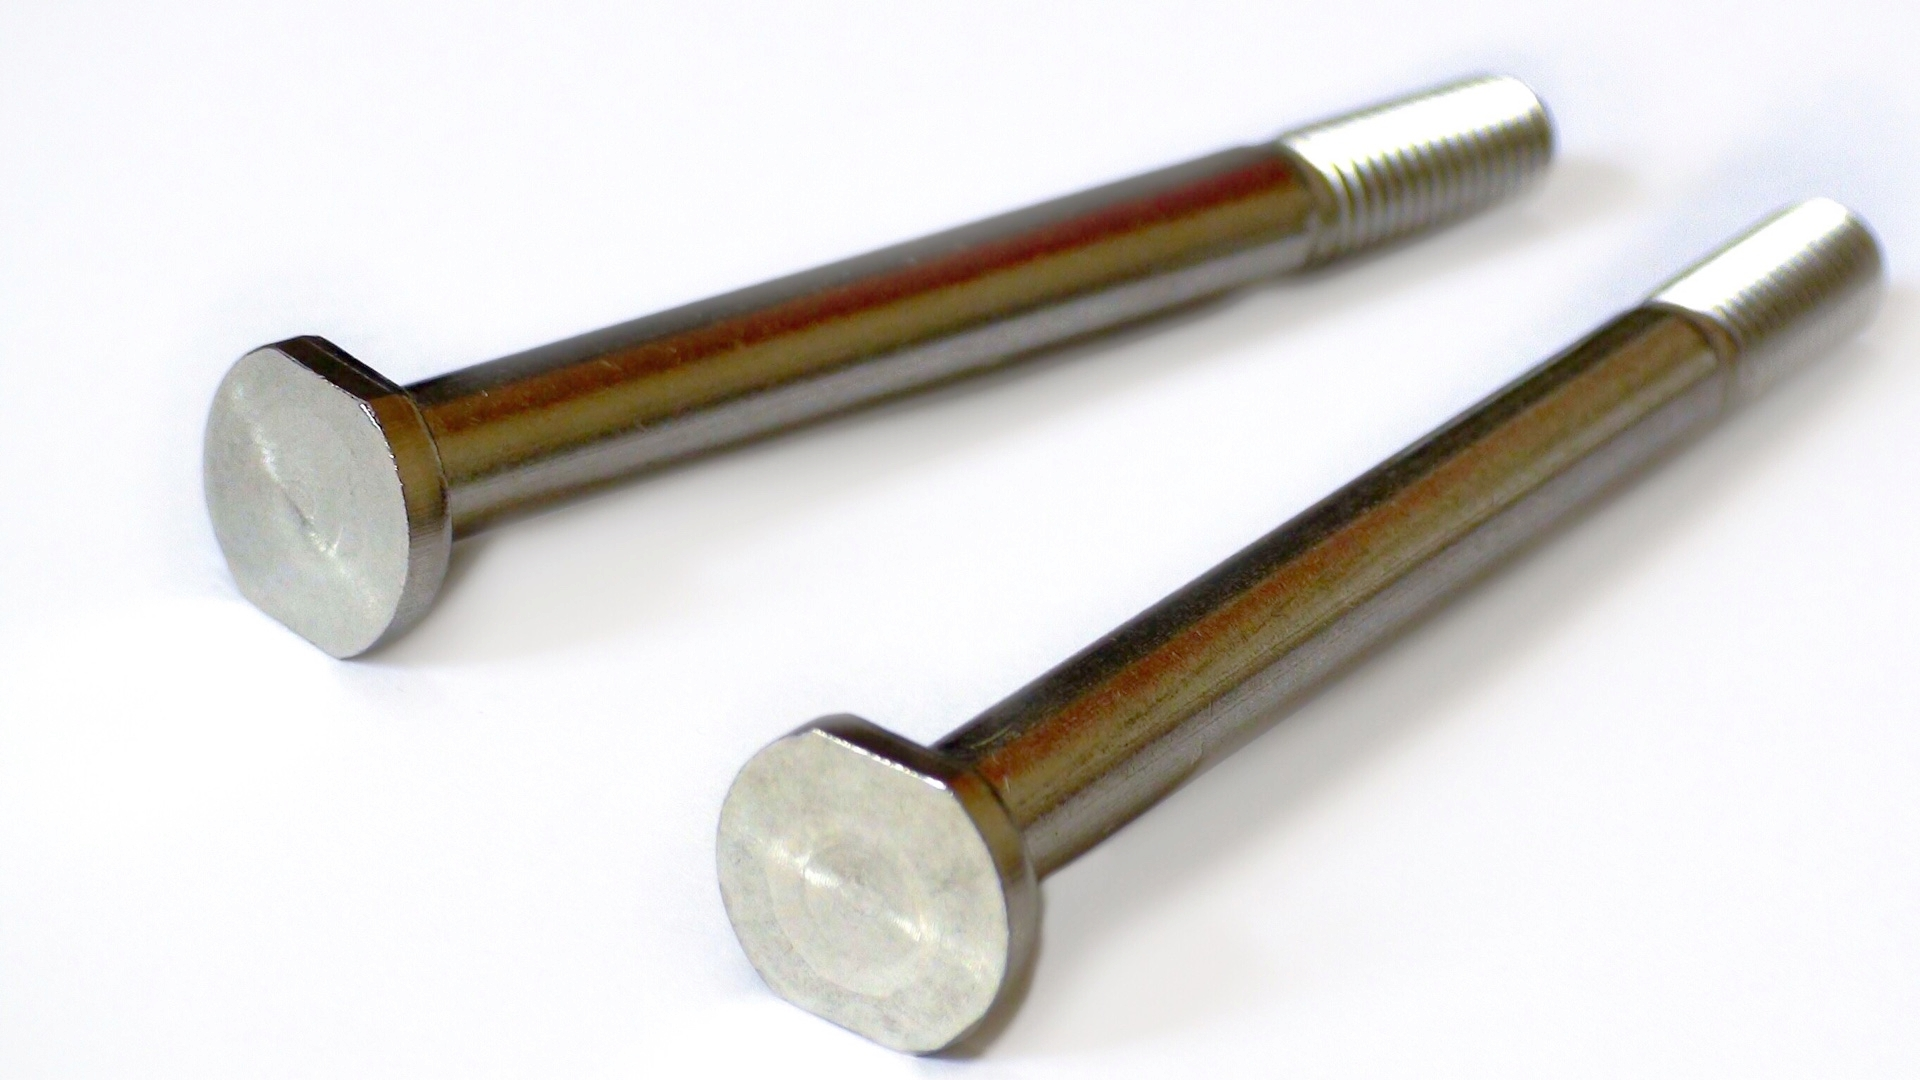 Stainless Special Bolt with Custom Oval Head